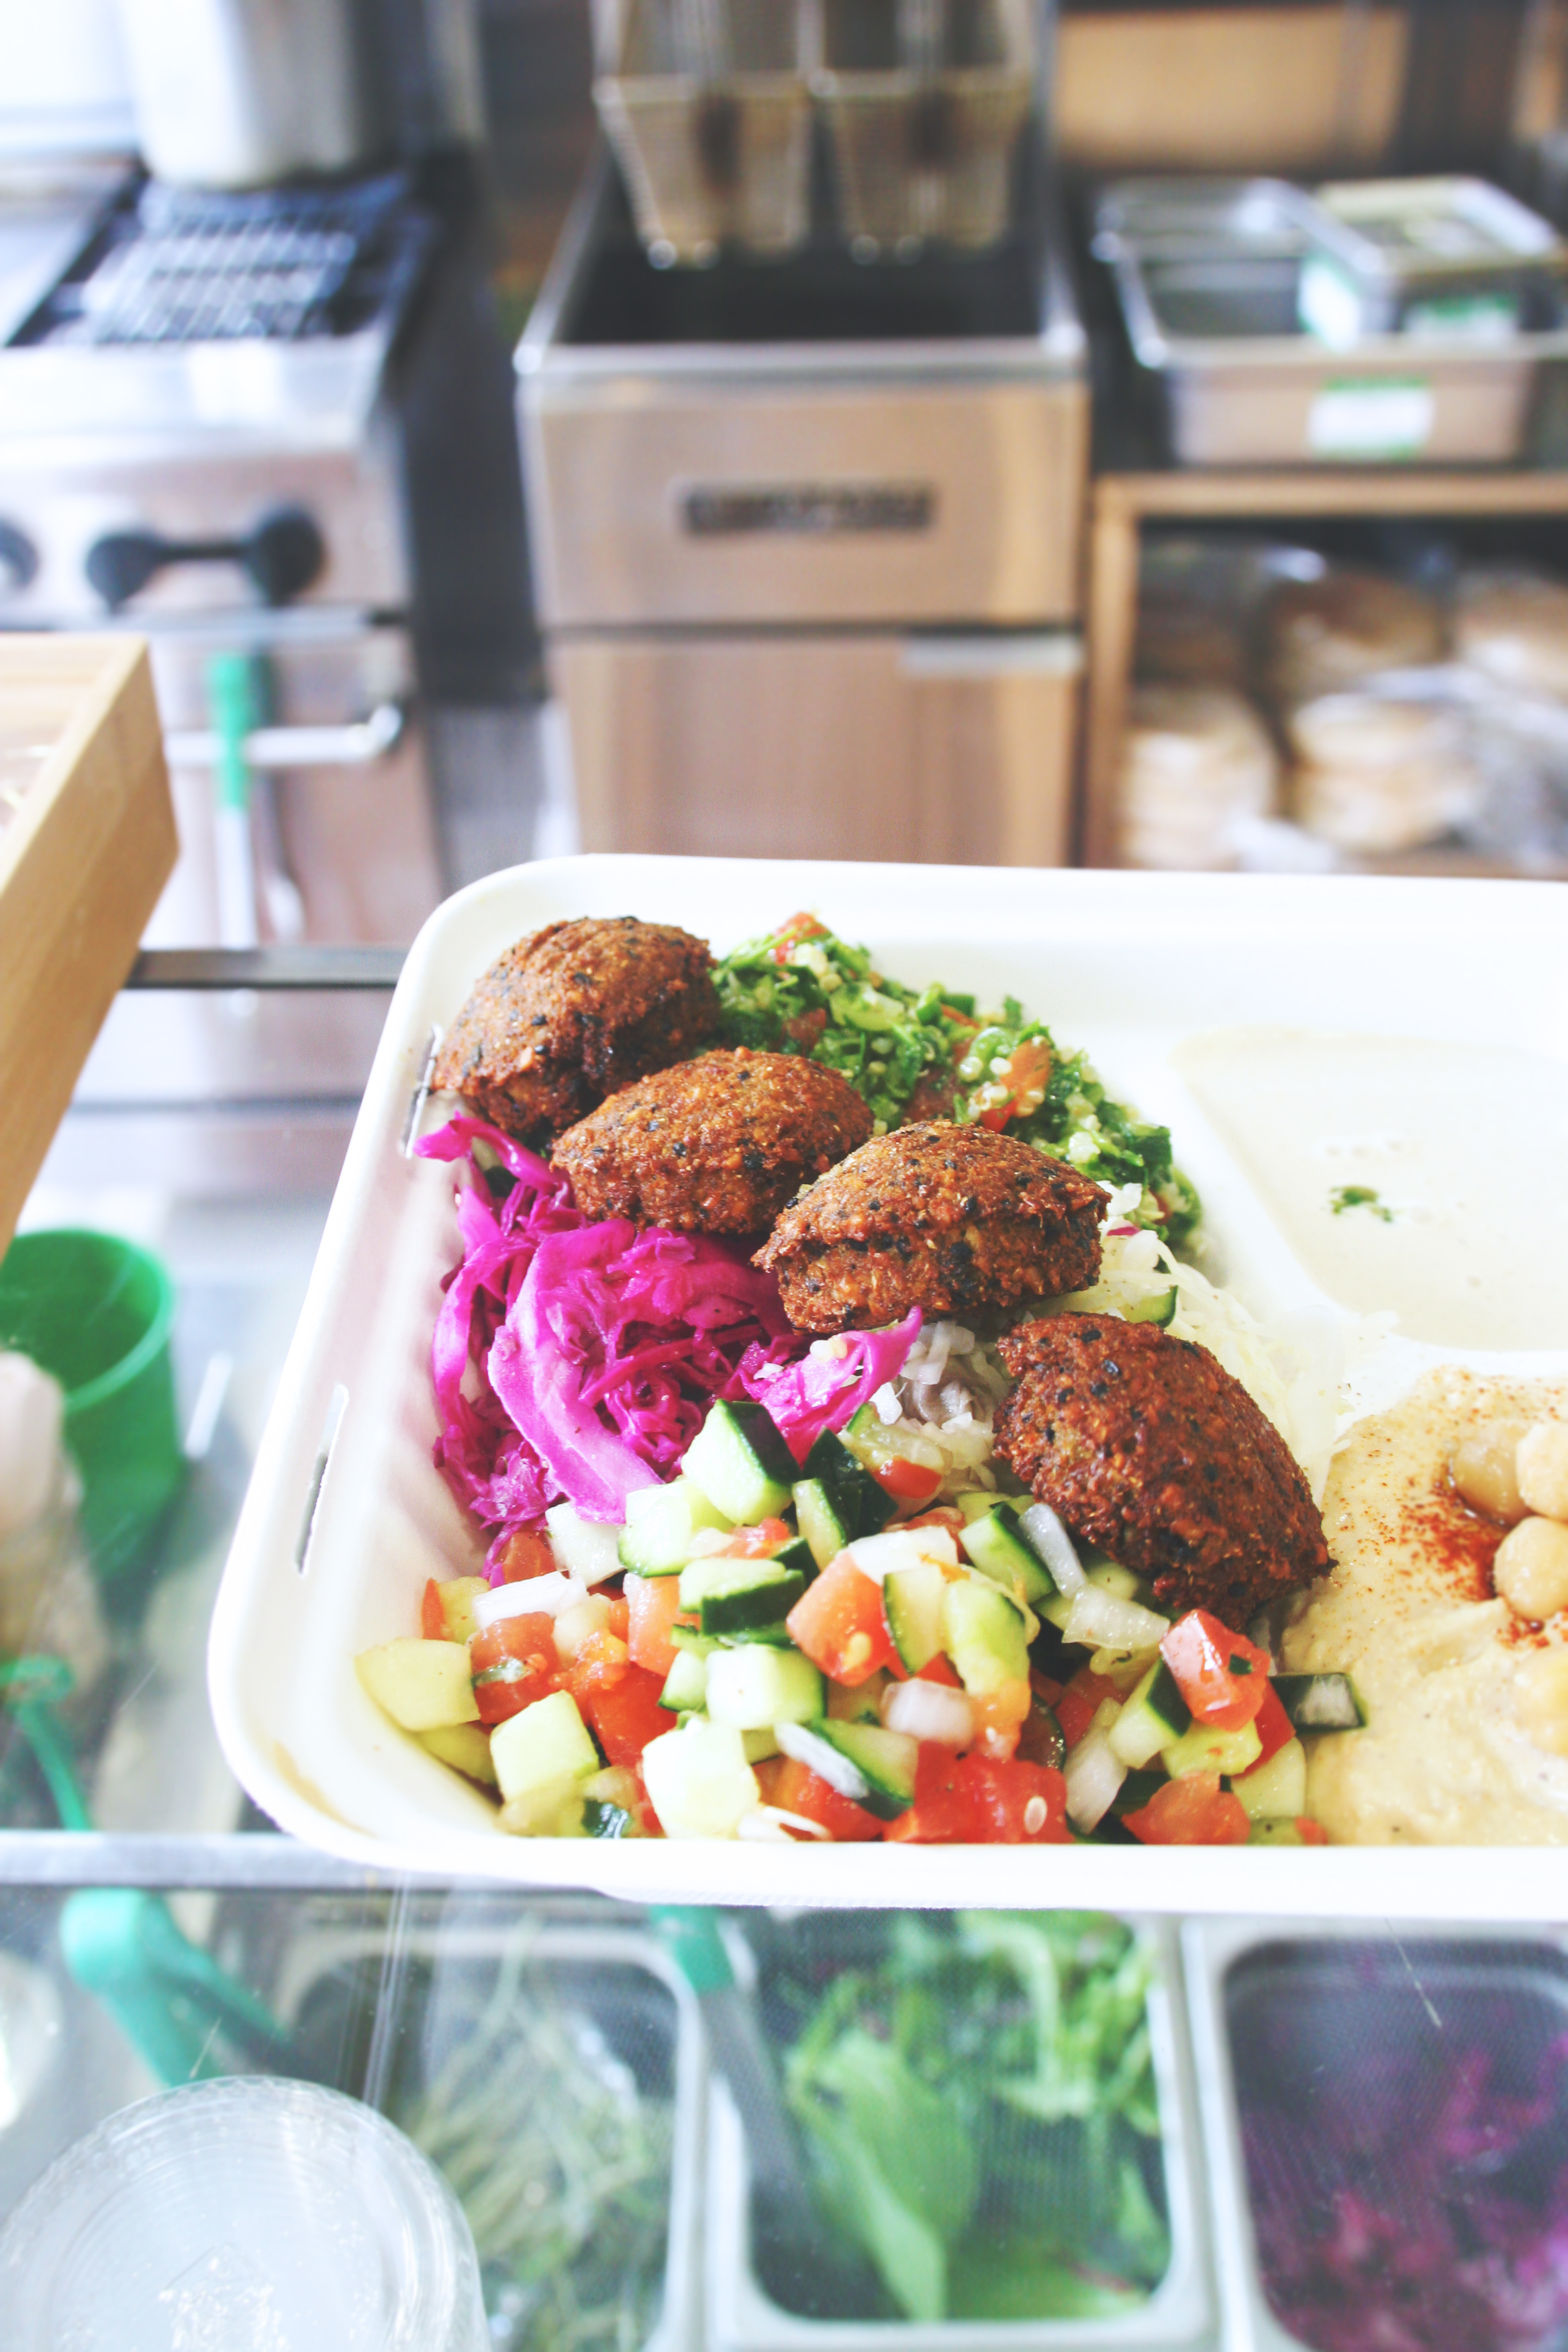 vegan falafel with hummus, tahini, Israeli salad, quinoa tabouli, cabbage // fala bar los angeles